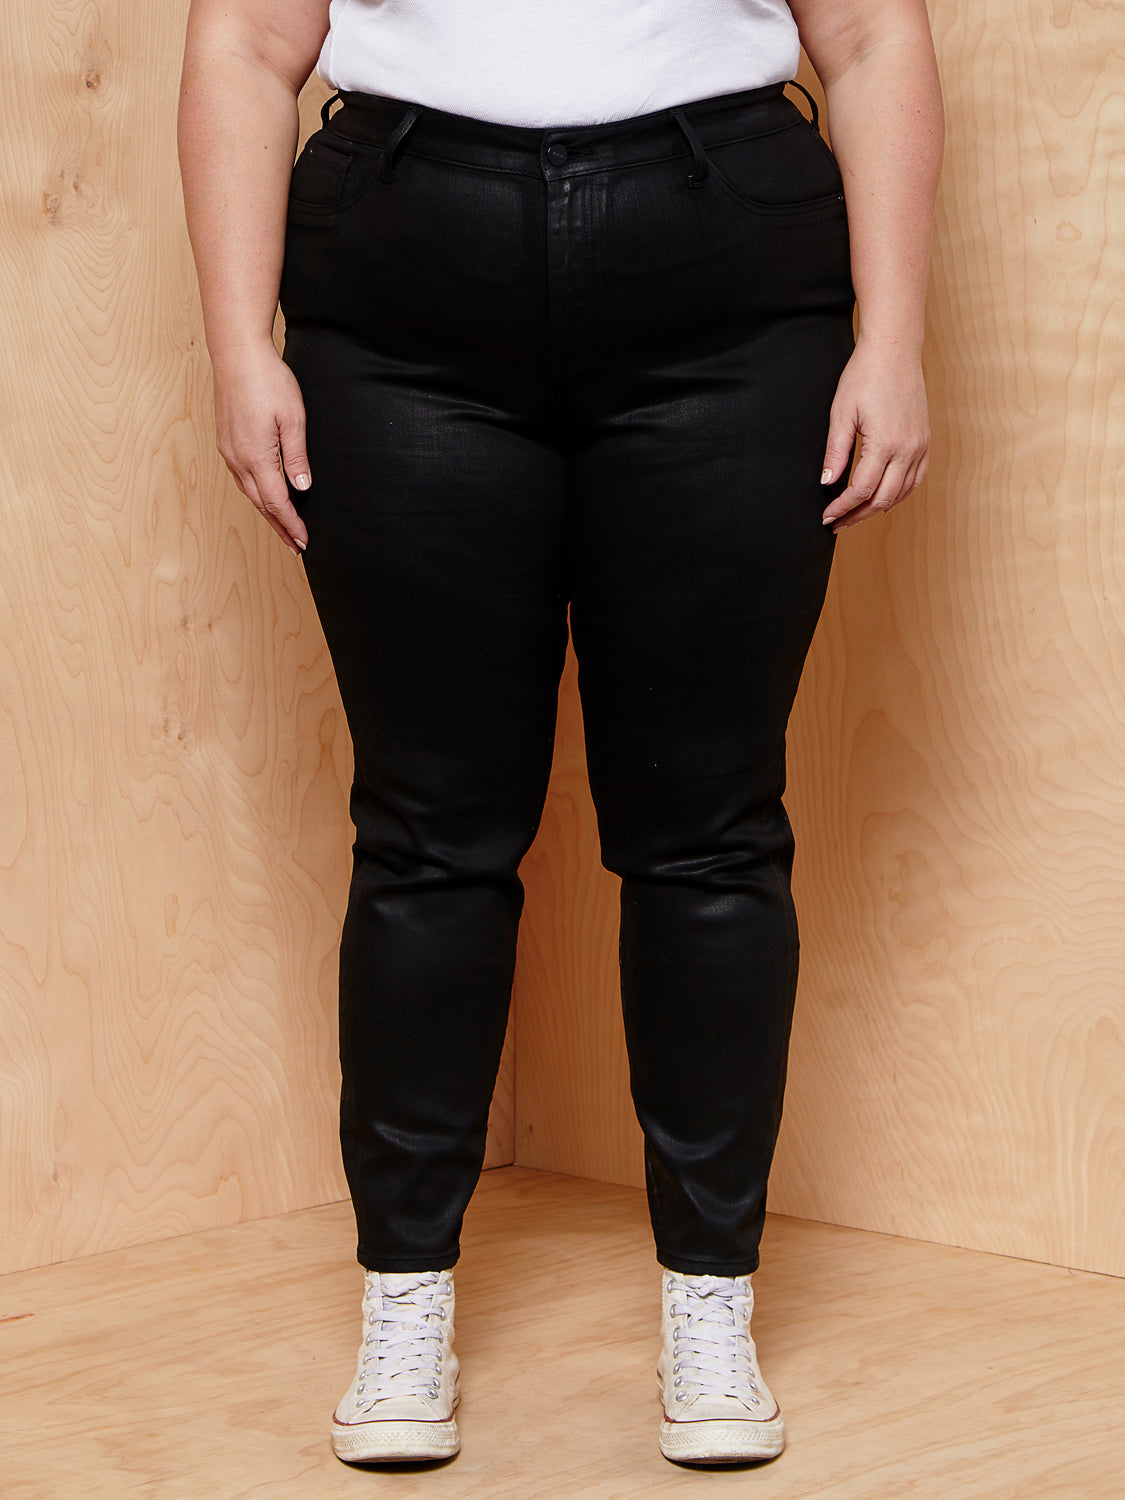 Warp + Weft High Rise Skinny Black Waxed Denim